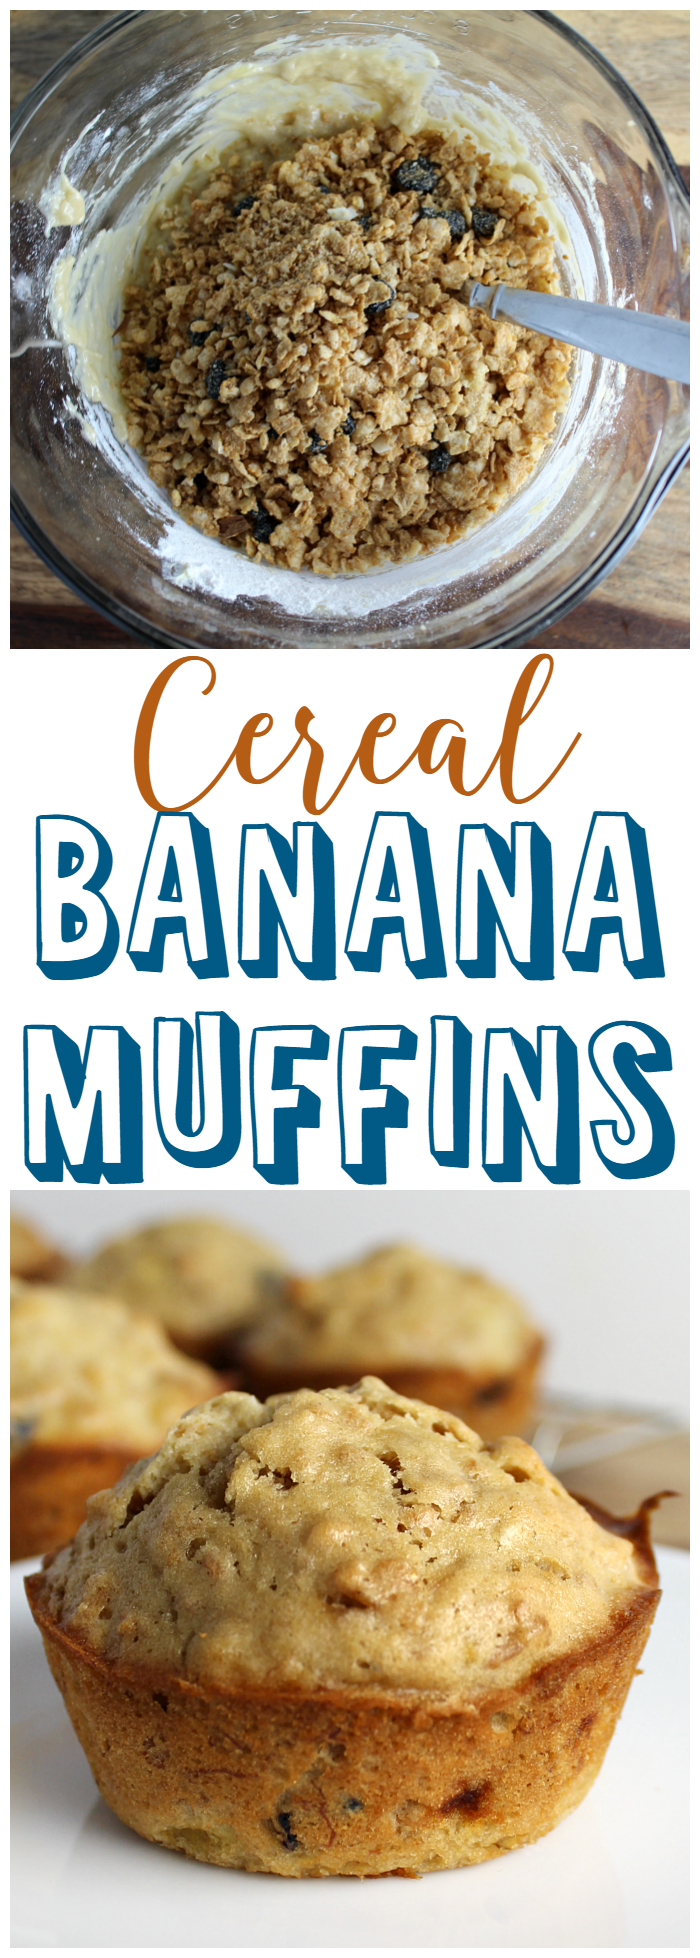 Cereal Banana Muffins make a great breakfast, afternoon snack, or sweet treat before bed.